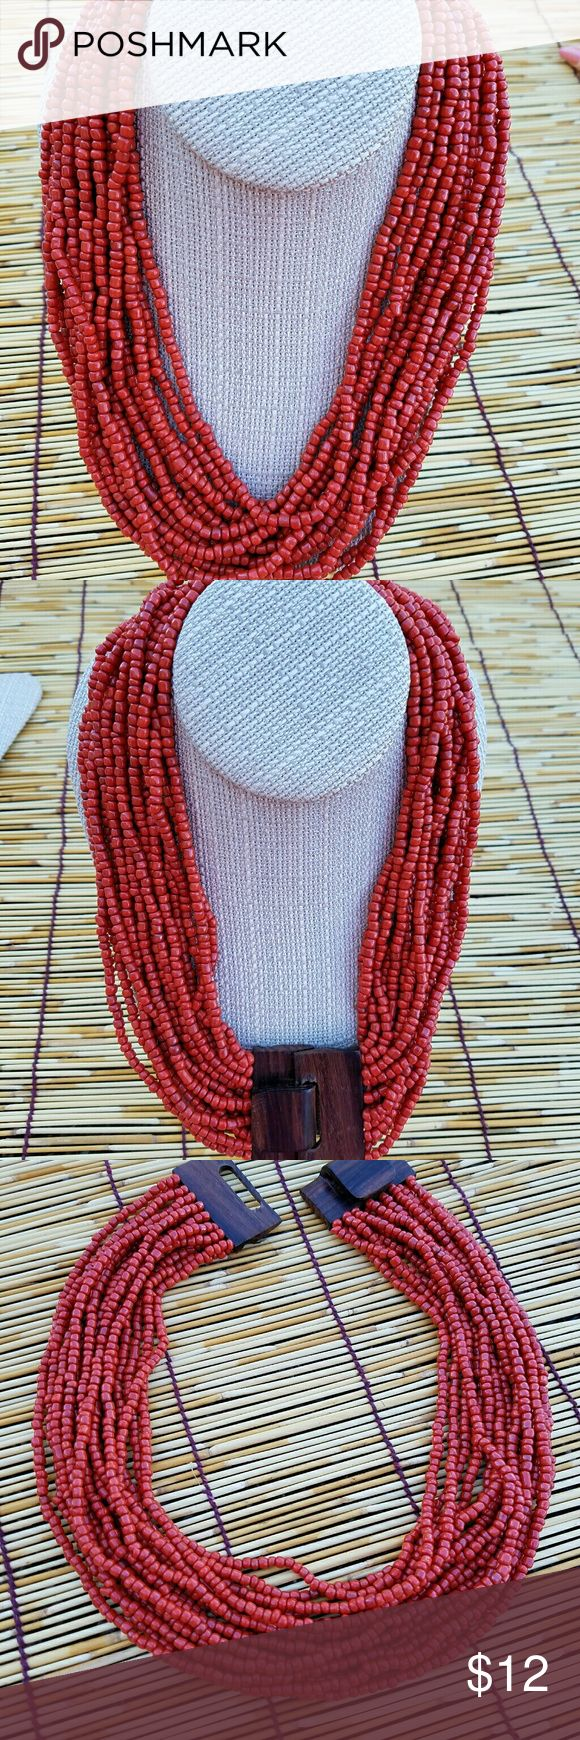 Orange India Bead Necklace Beads, beads, beads, 16 strands of bright orange beads from India, finished off with a hardwood grained clasp.  The length is 20 inches. There is no extention. Jewelry Necklaces